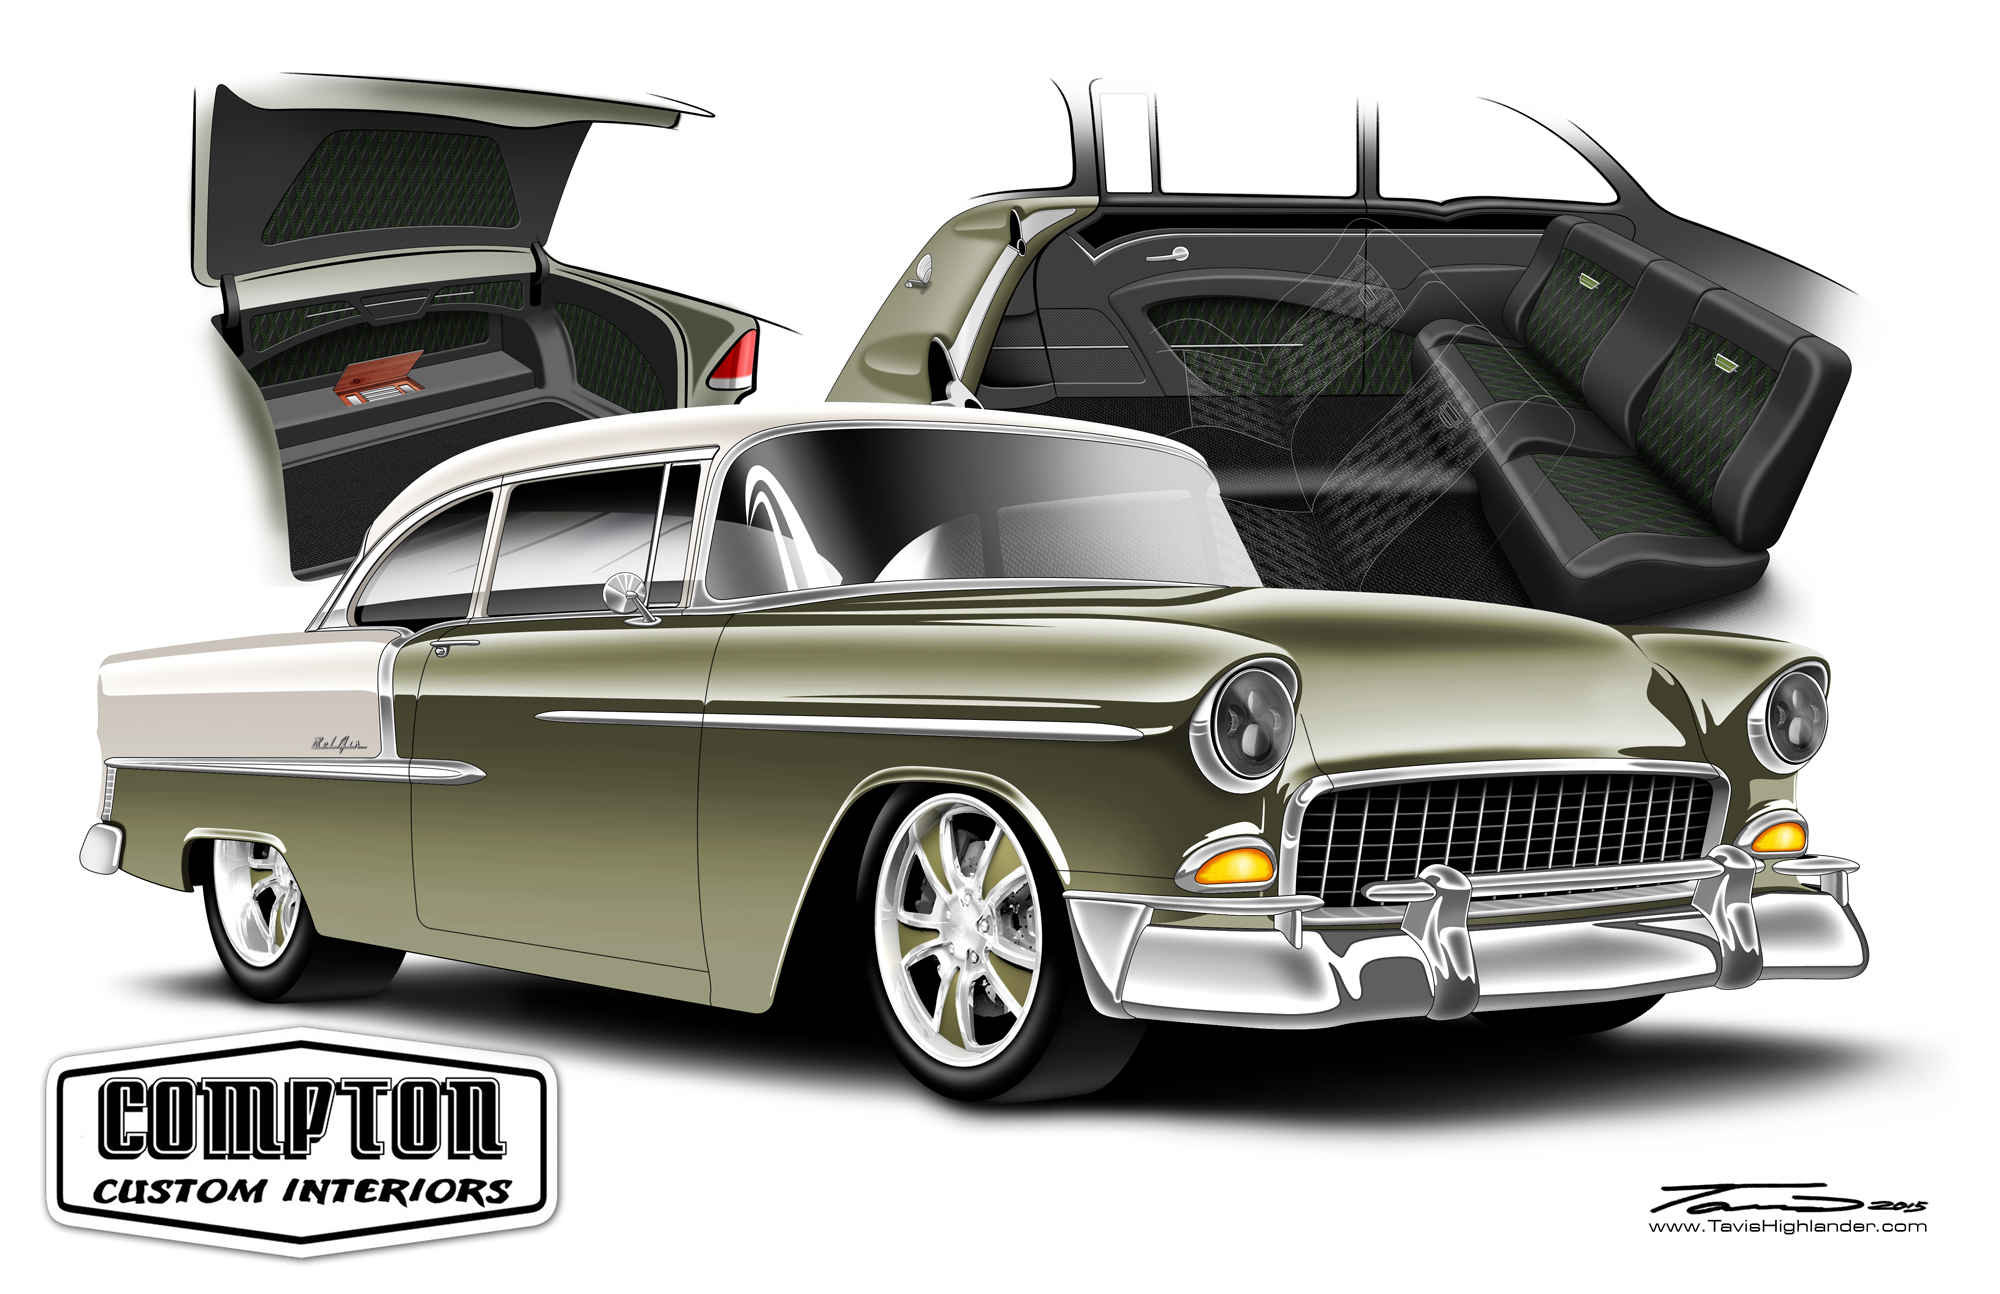 55-Chevy-Layout-2